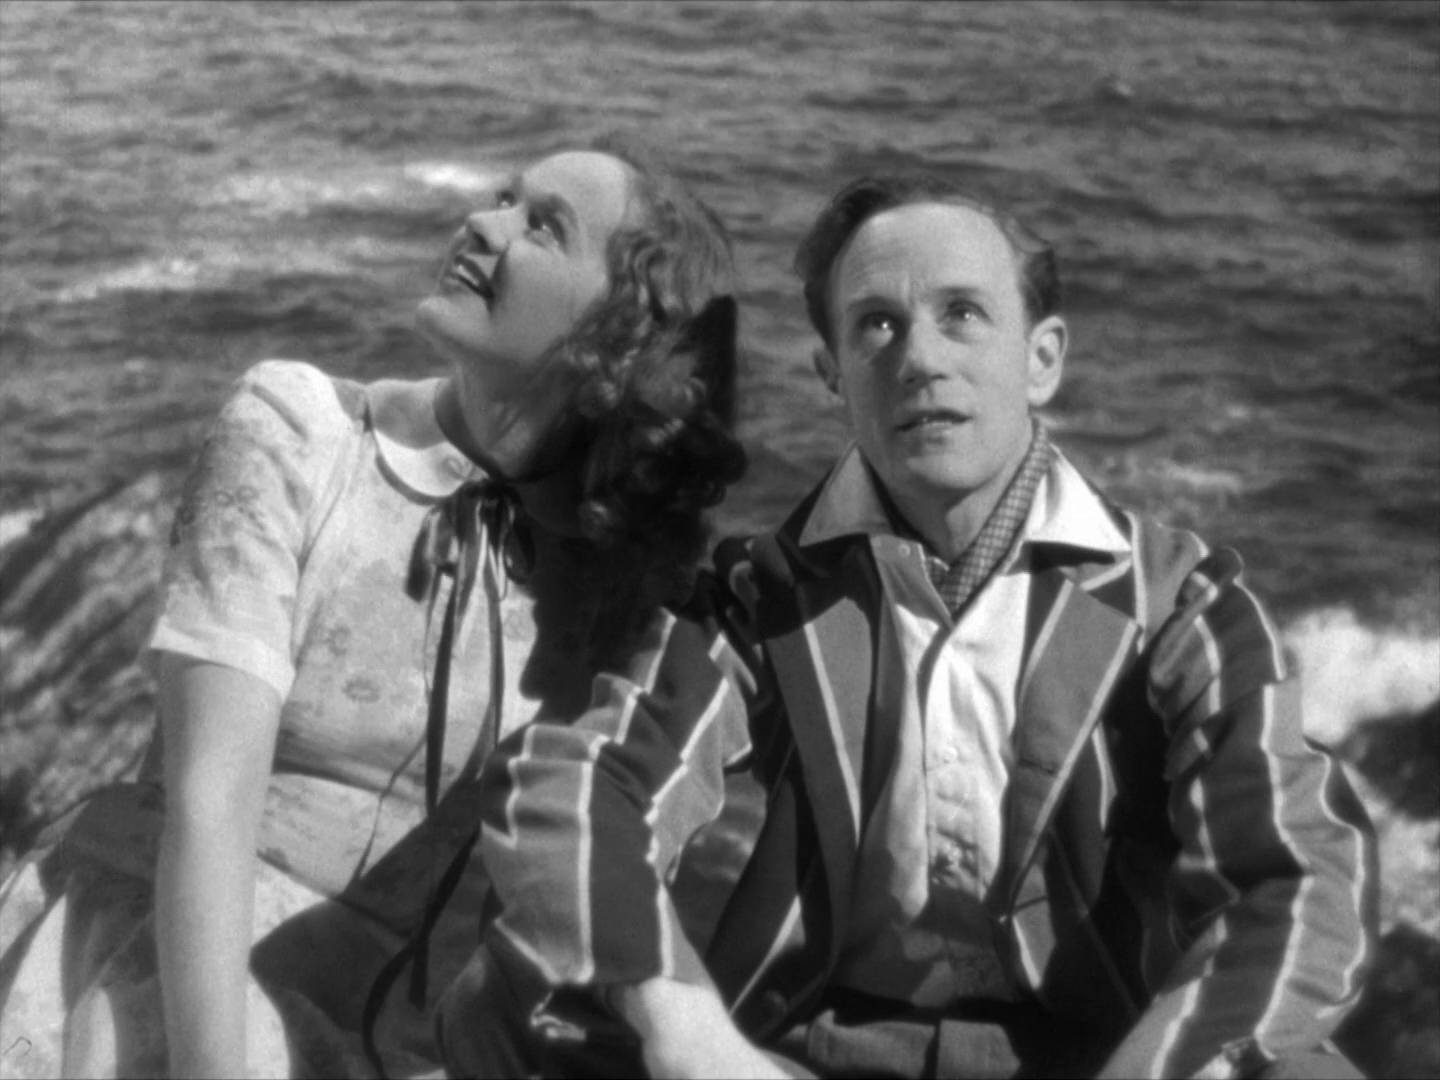 Rosamund John as Diana Mitchell and director Leslie Howard as RJ Mitchell